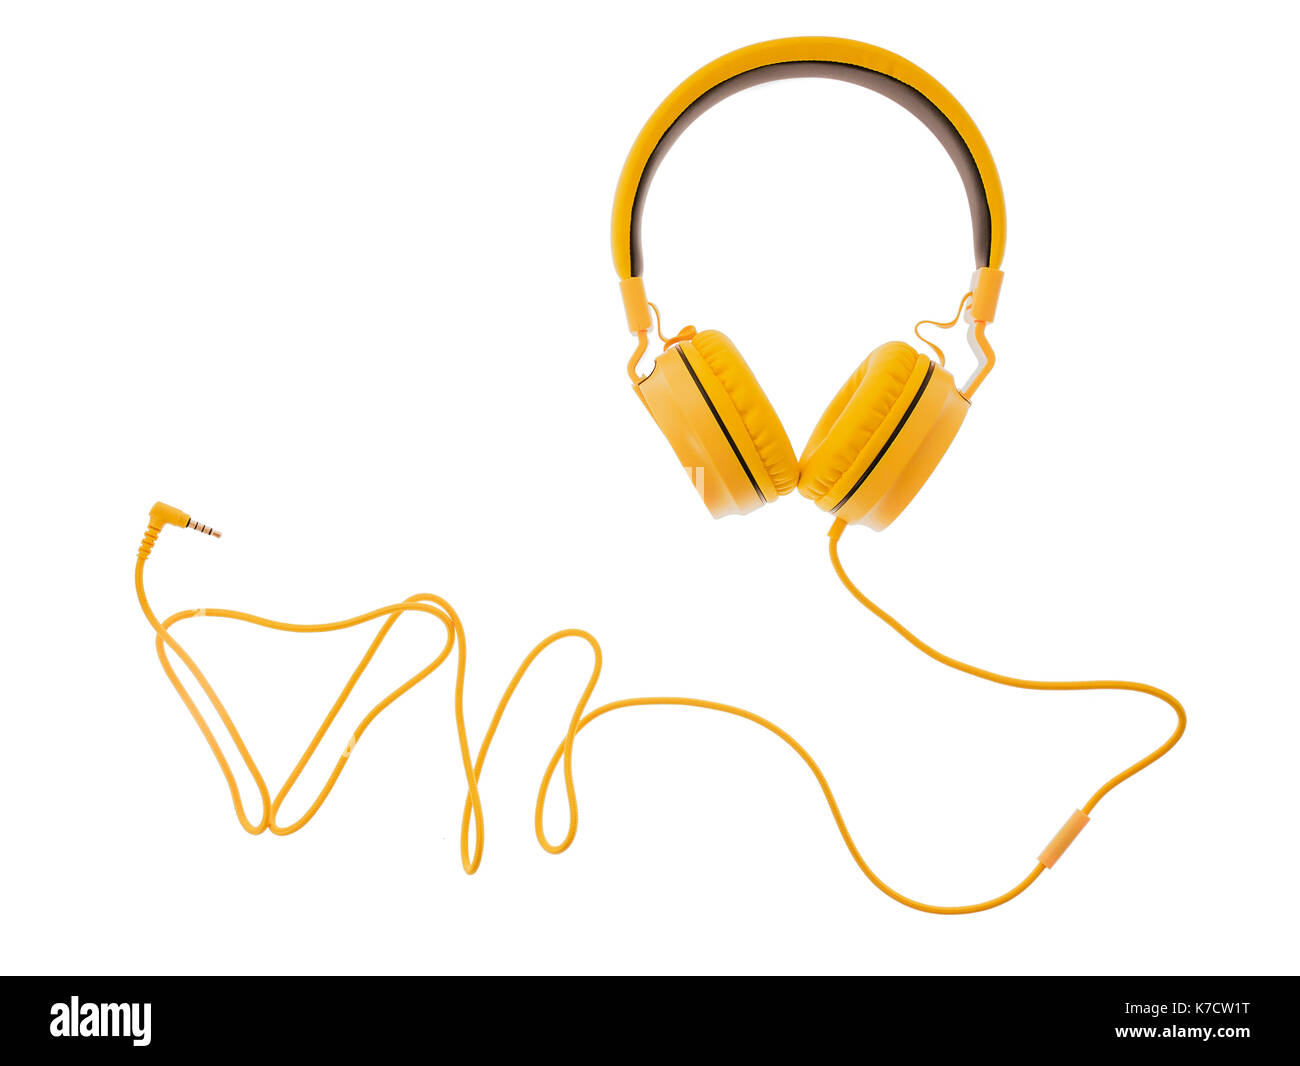 yellow headphones or earphone computer isolated on a white background - Stock Image